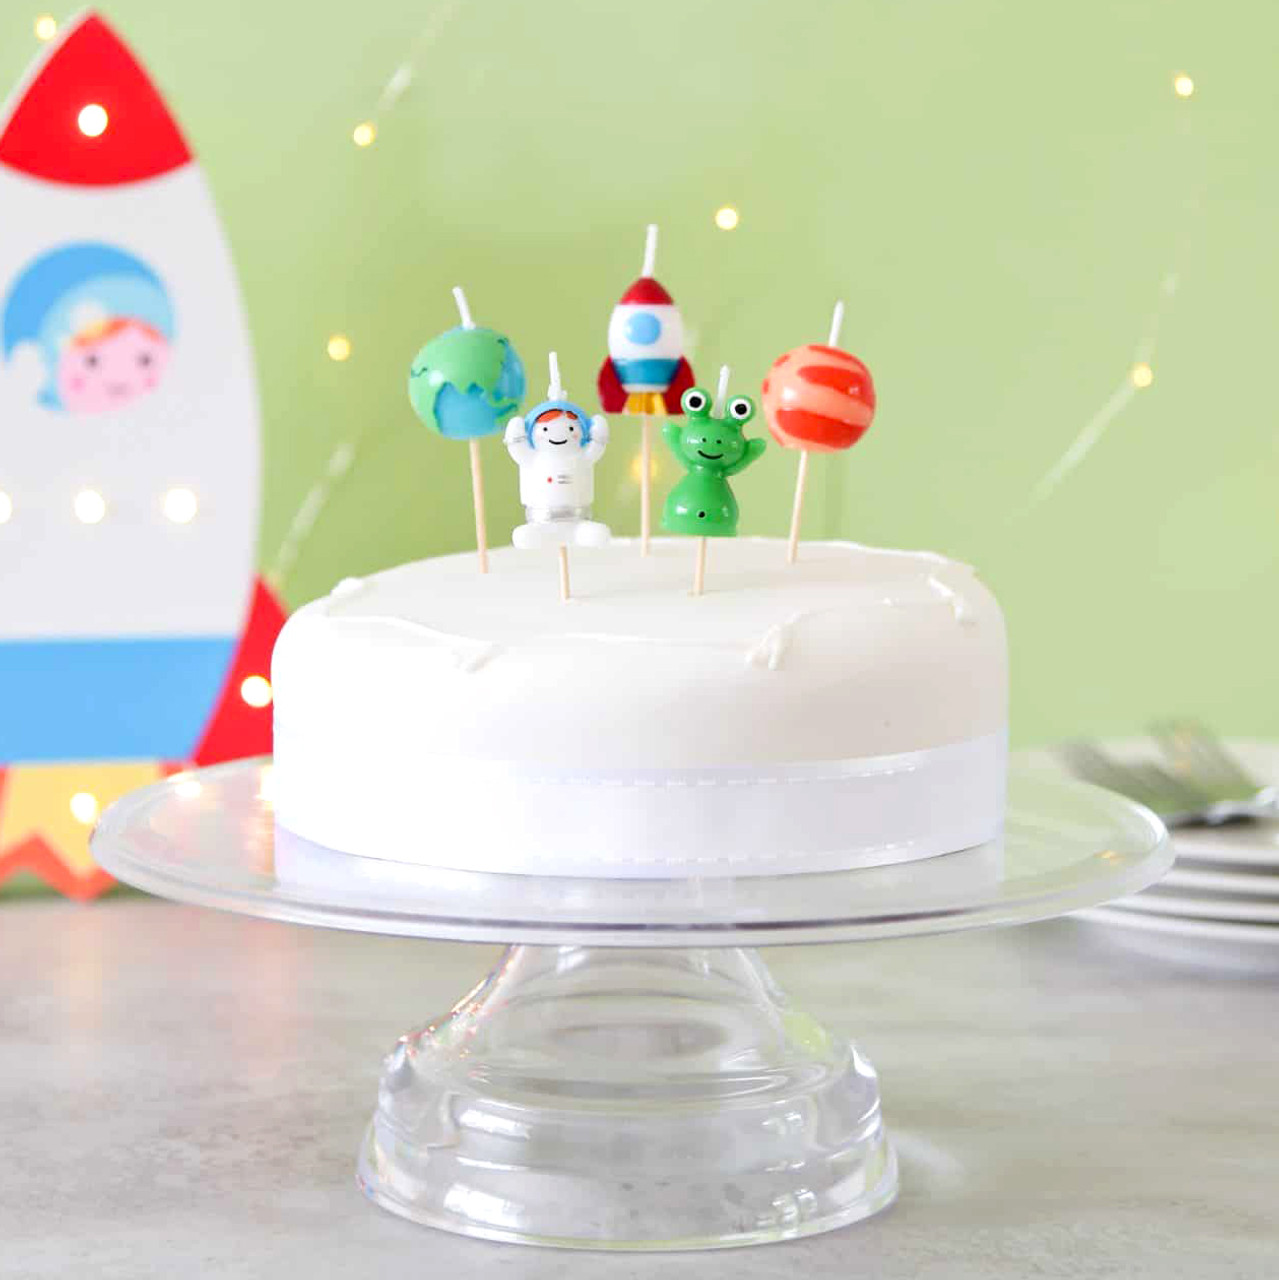 Remarkable Space Themed Birthday Party Cake Candles Funny Birthday Cards Online Overcheapnameinfo